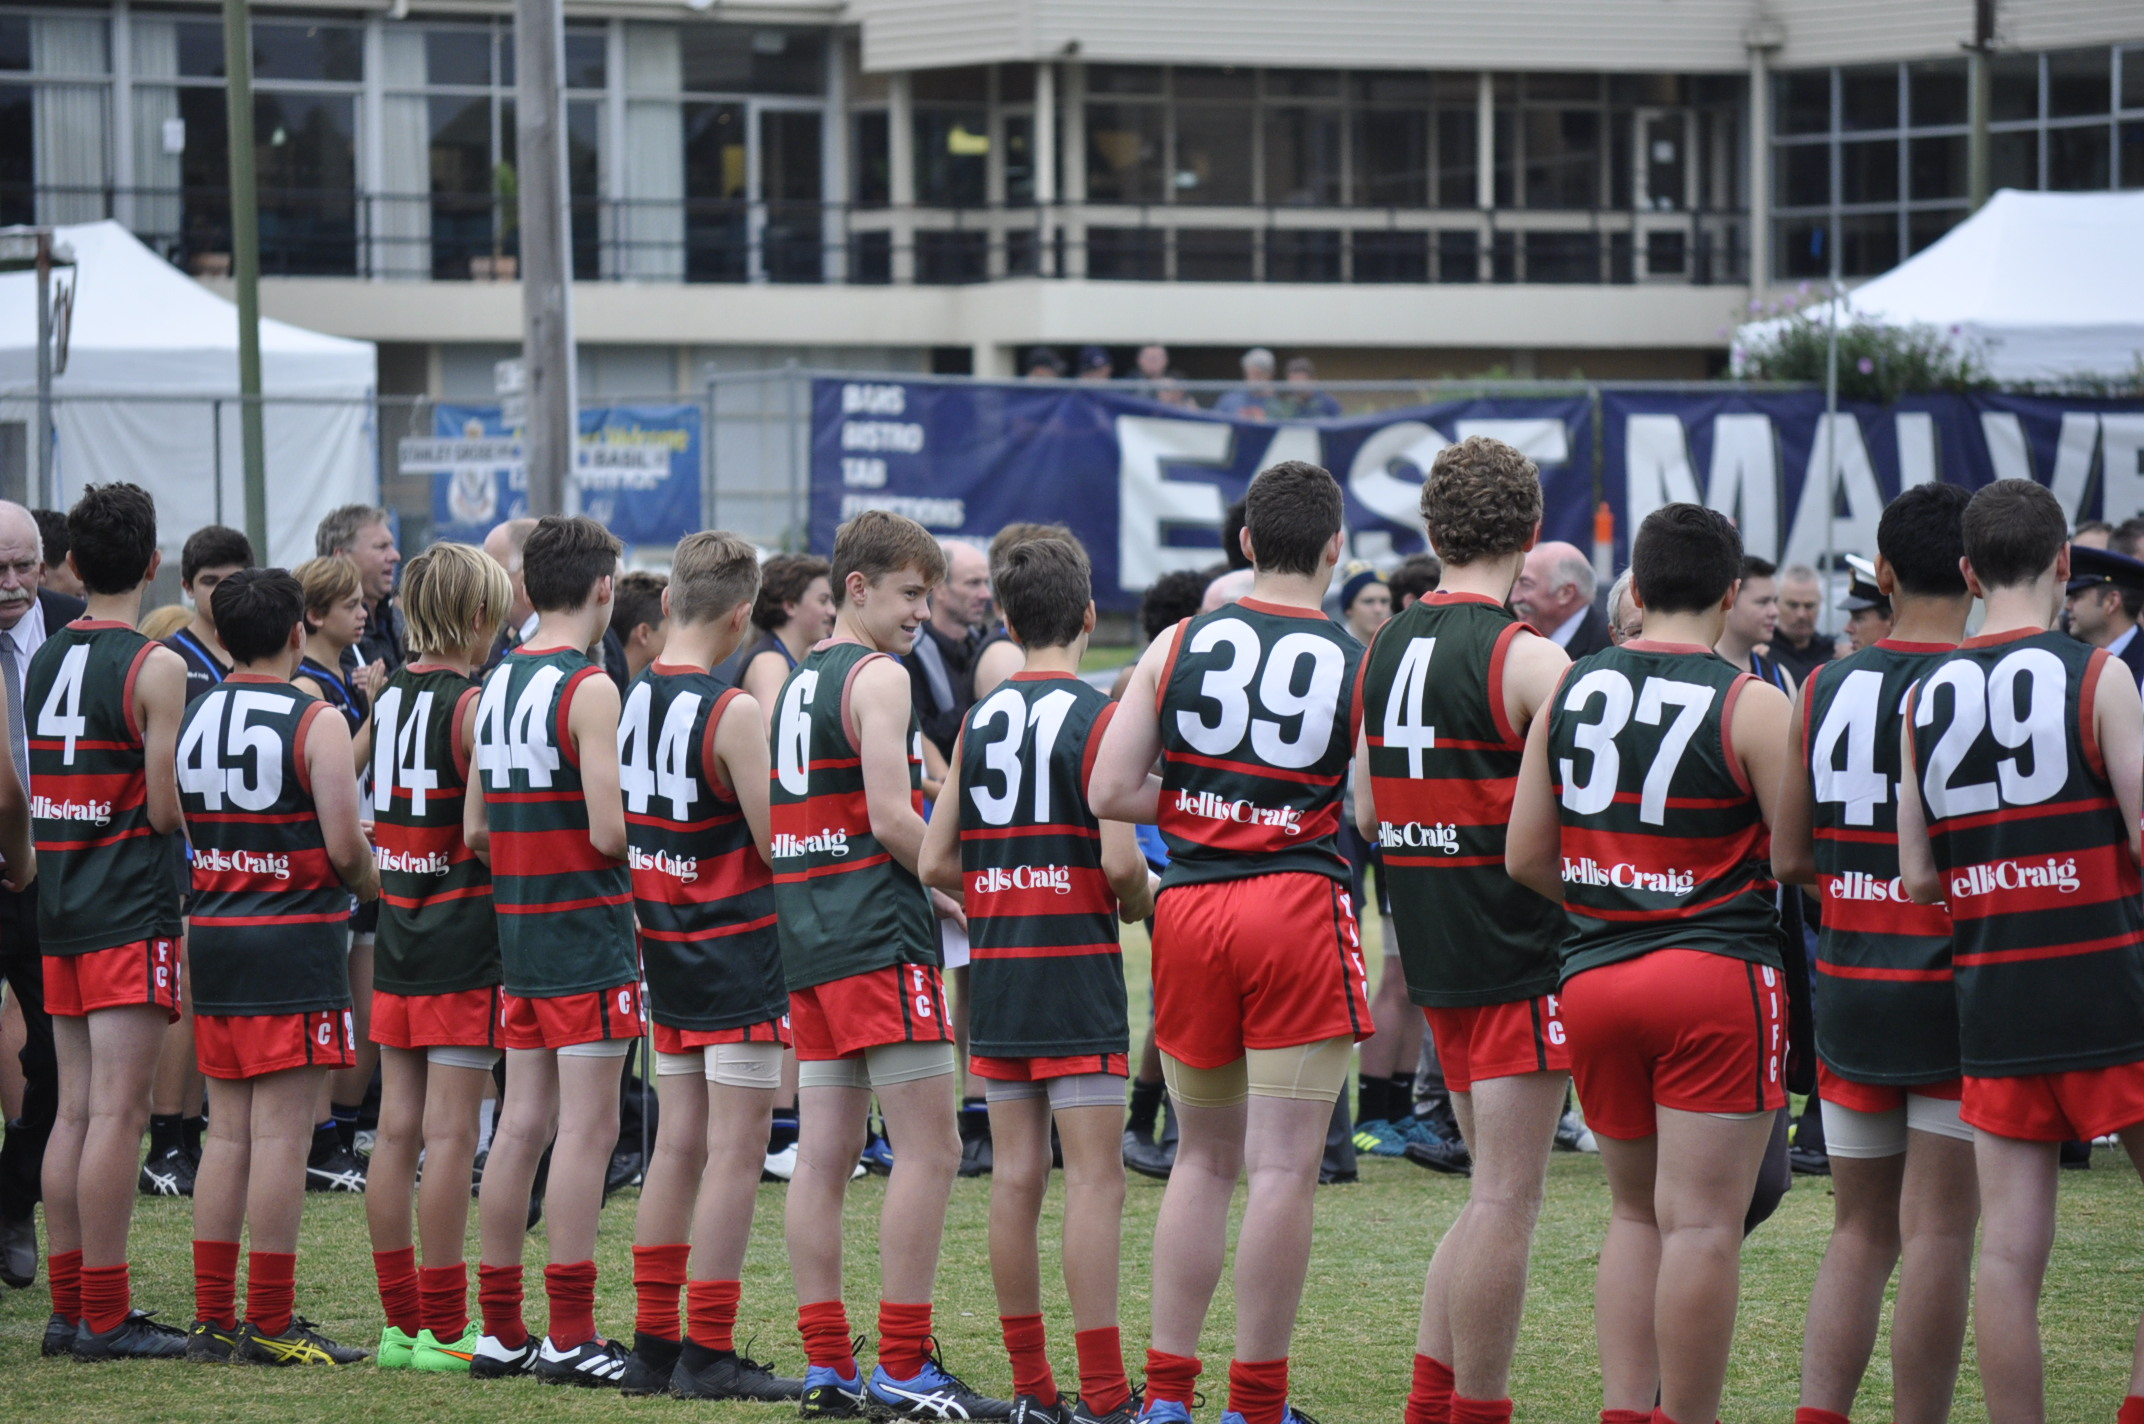 180425 ANZAC Day U15 Boys Presentation 3.jpeg